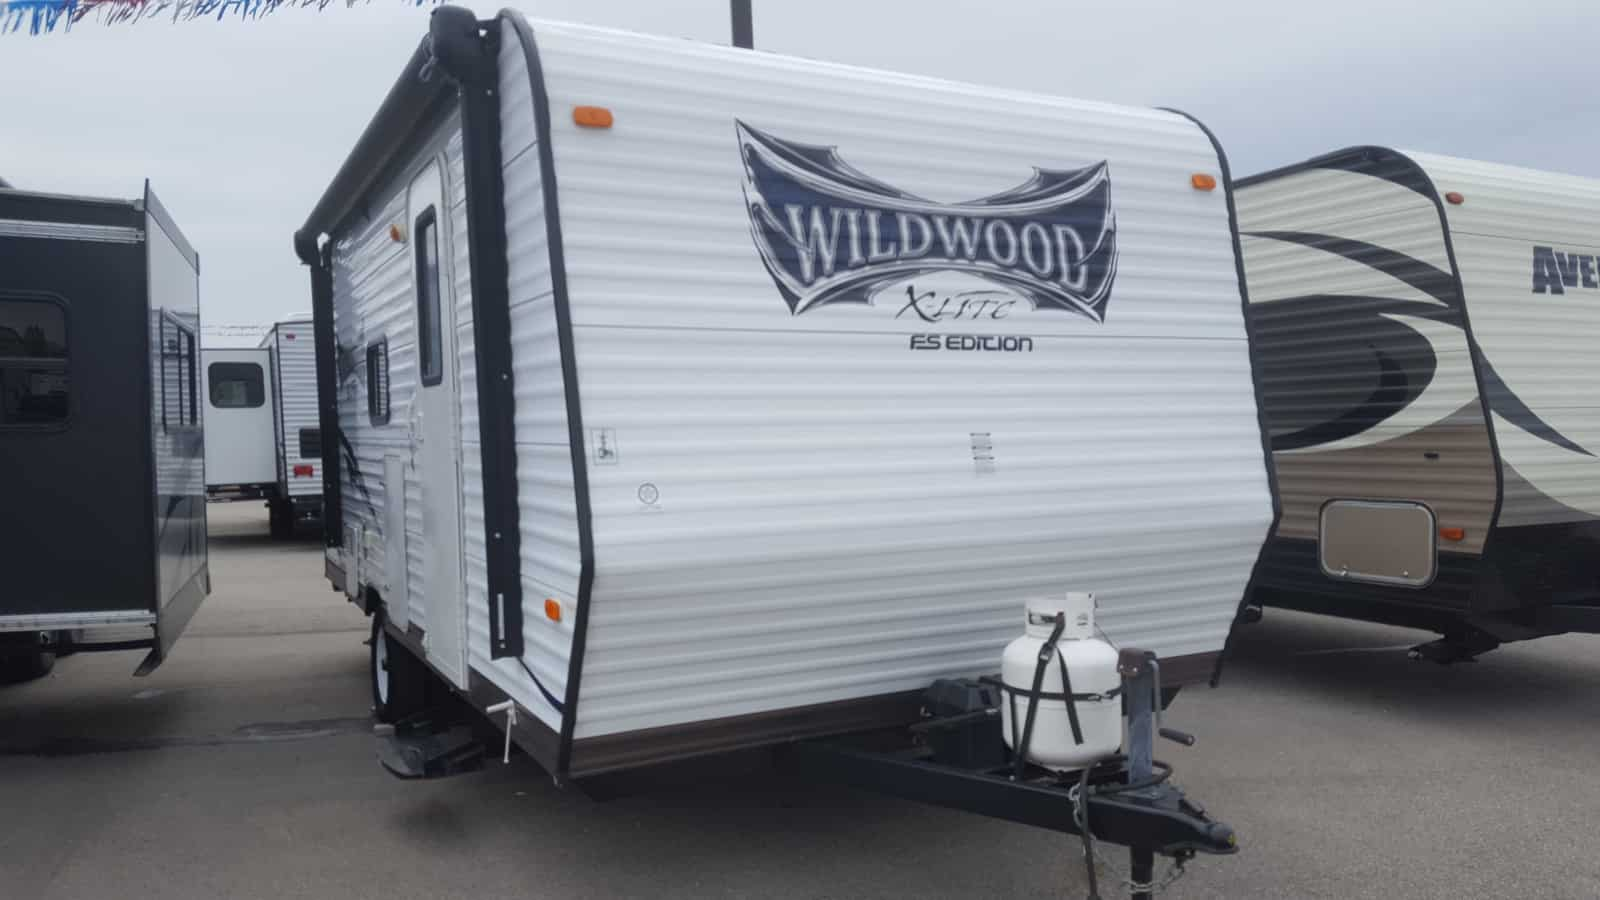 USED 2015 Forest River WILDWOOD X-LITE FS 195BH - American RV